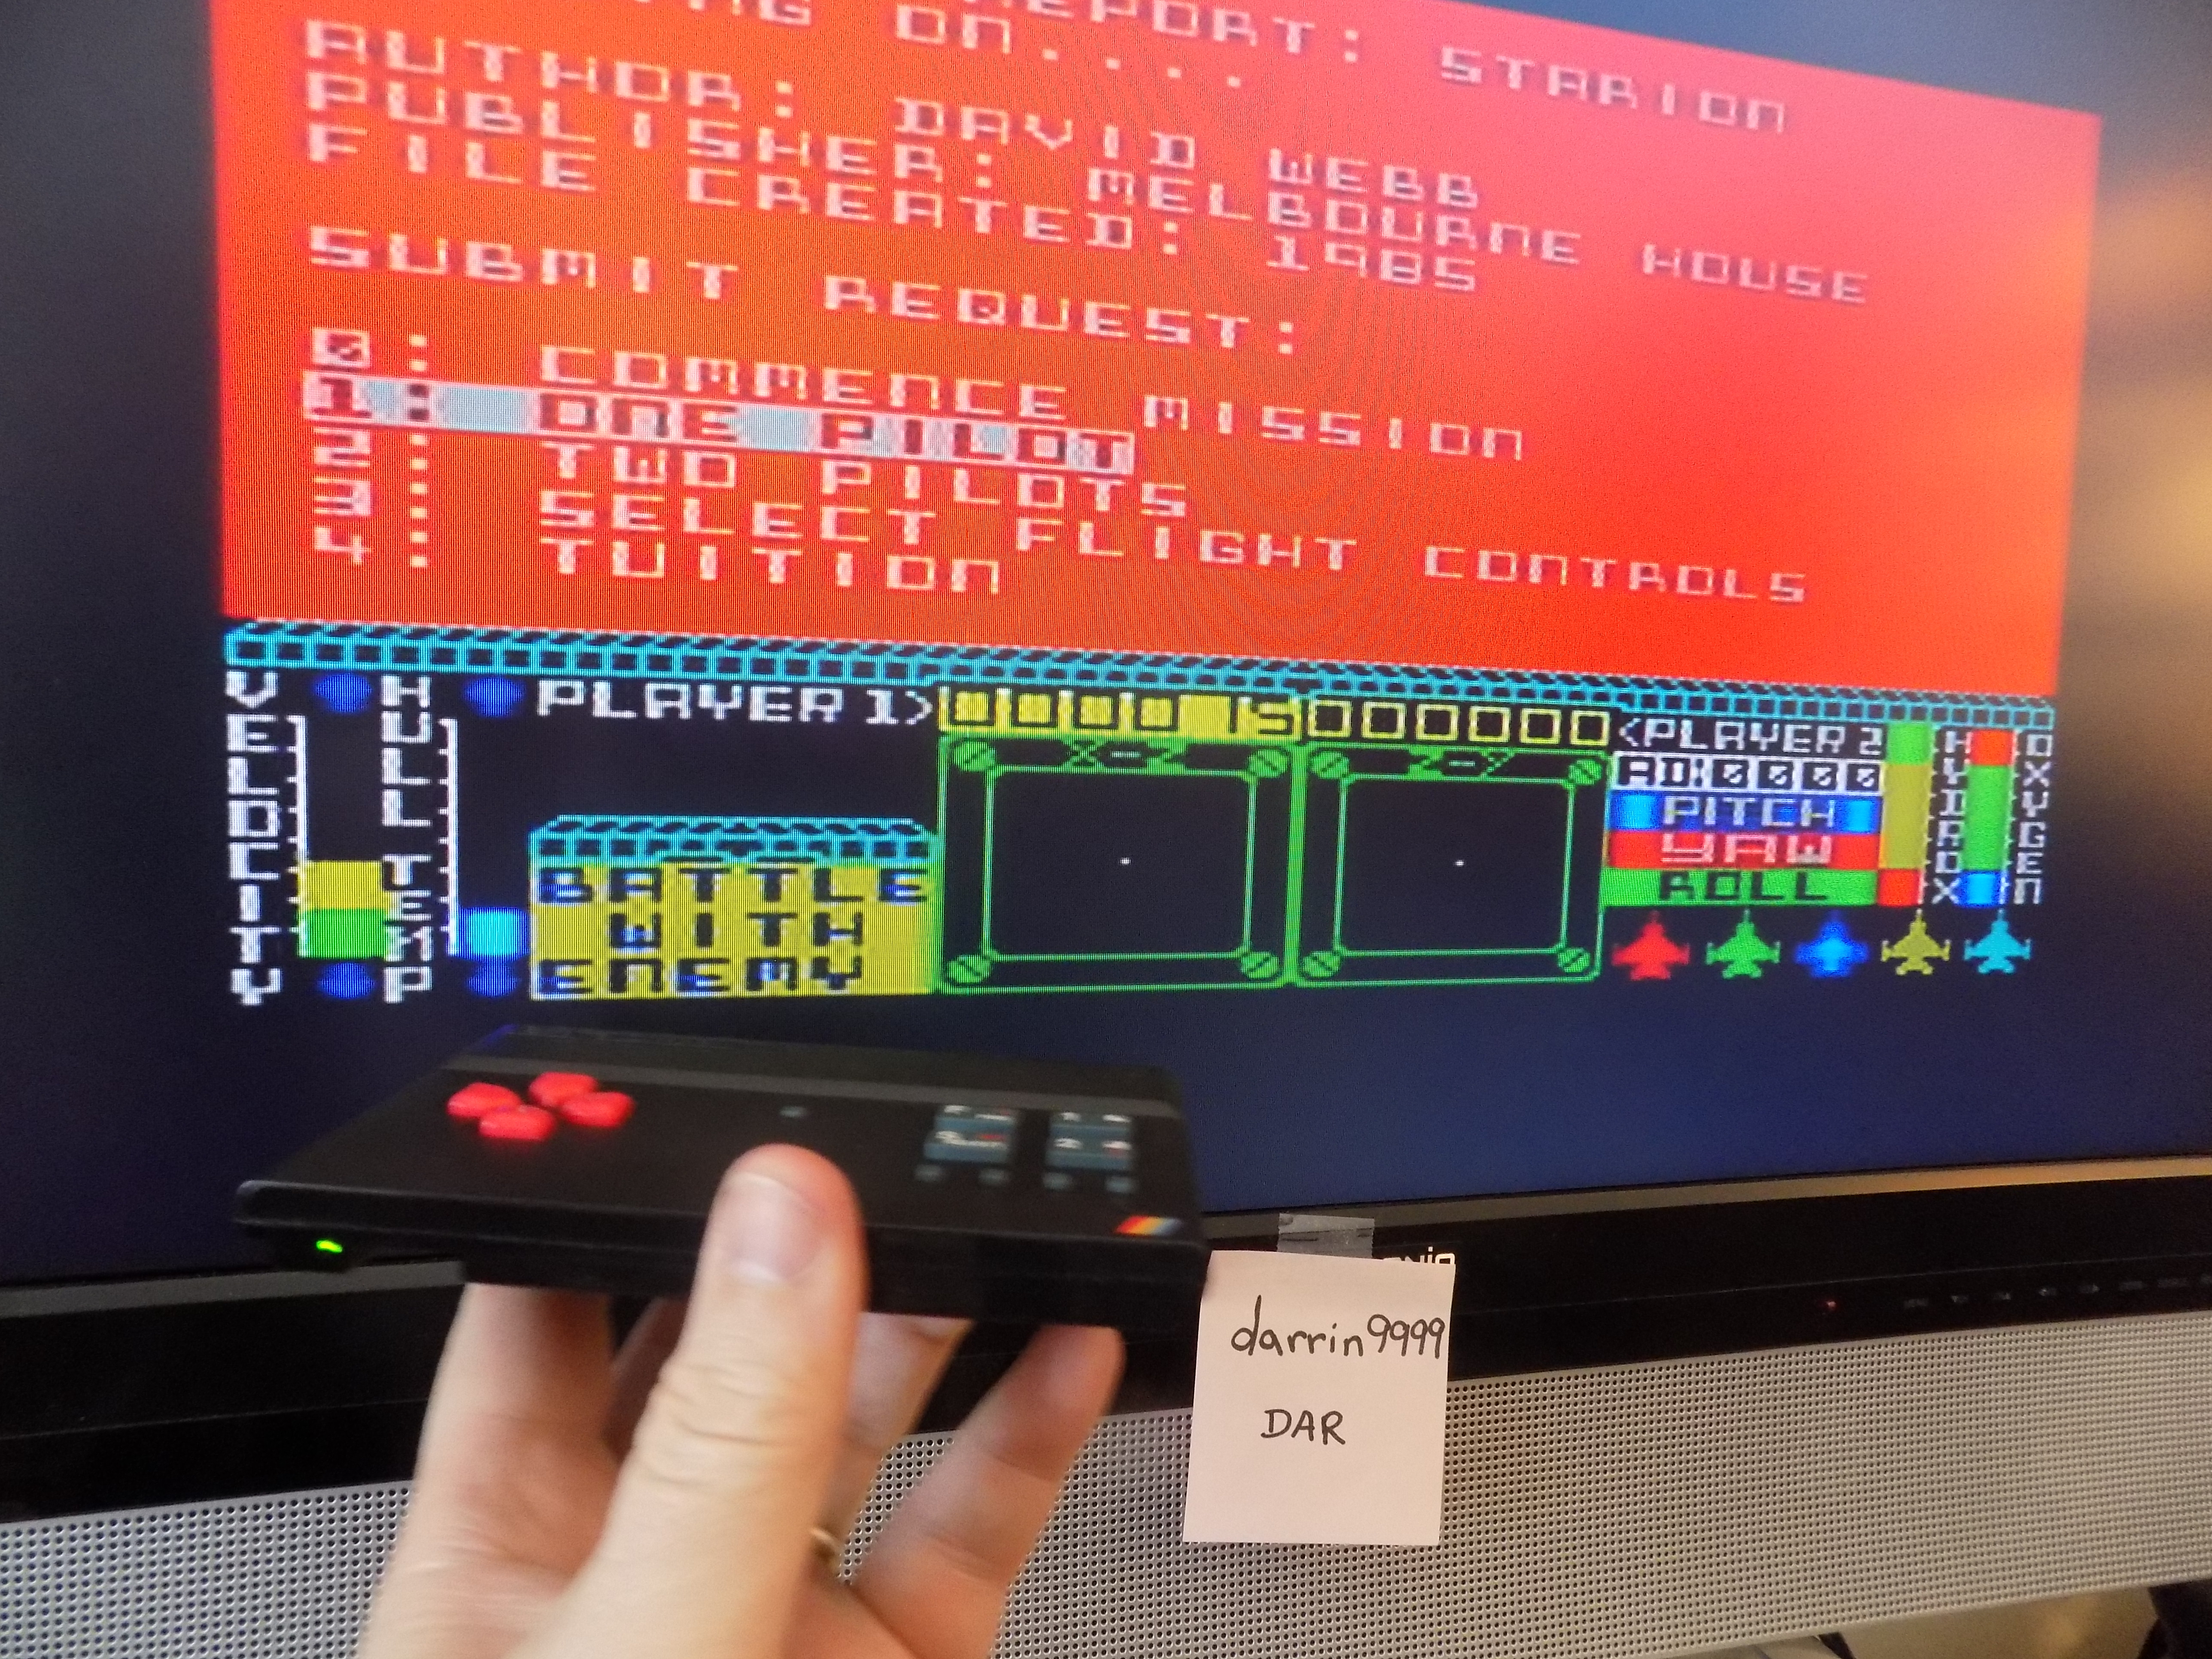 darrin9999: Starion (ZX Spectrum Emulated) 15 points on 2017-02-26 22:31:38